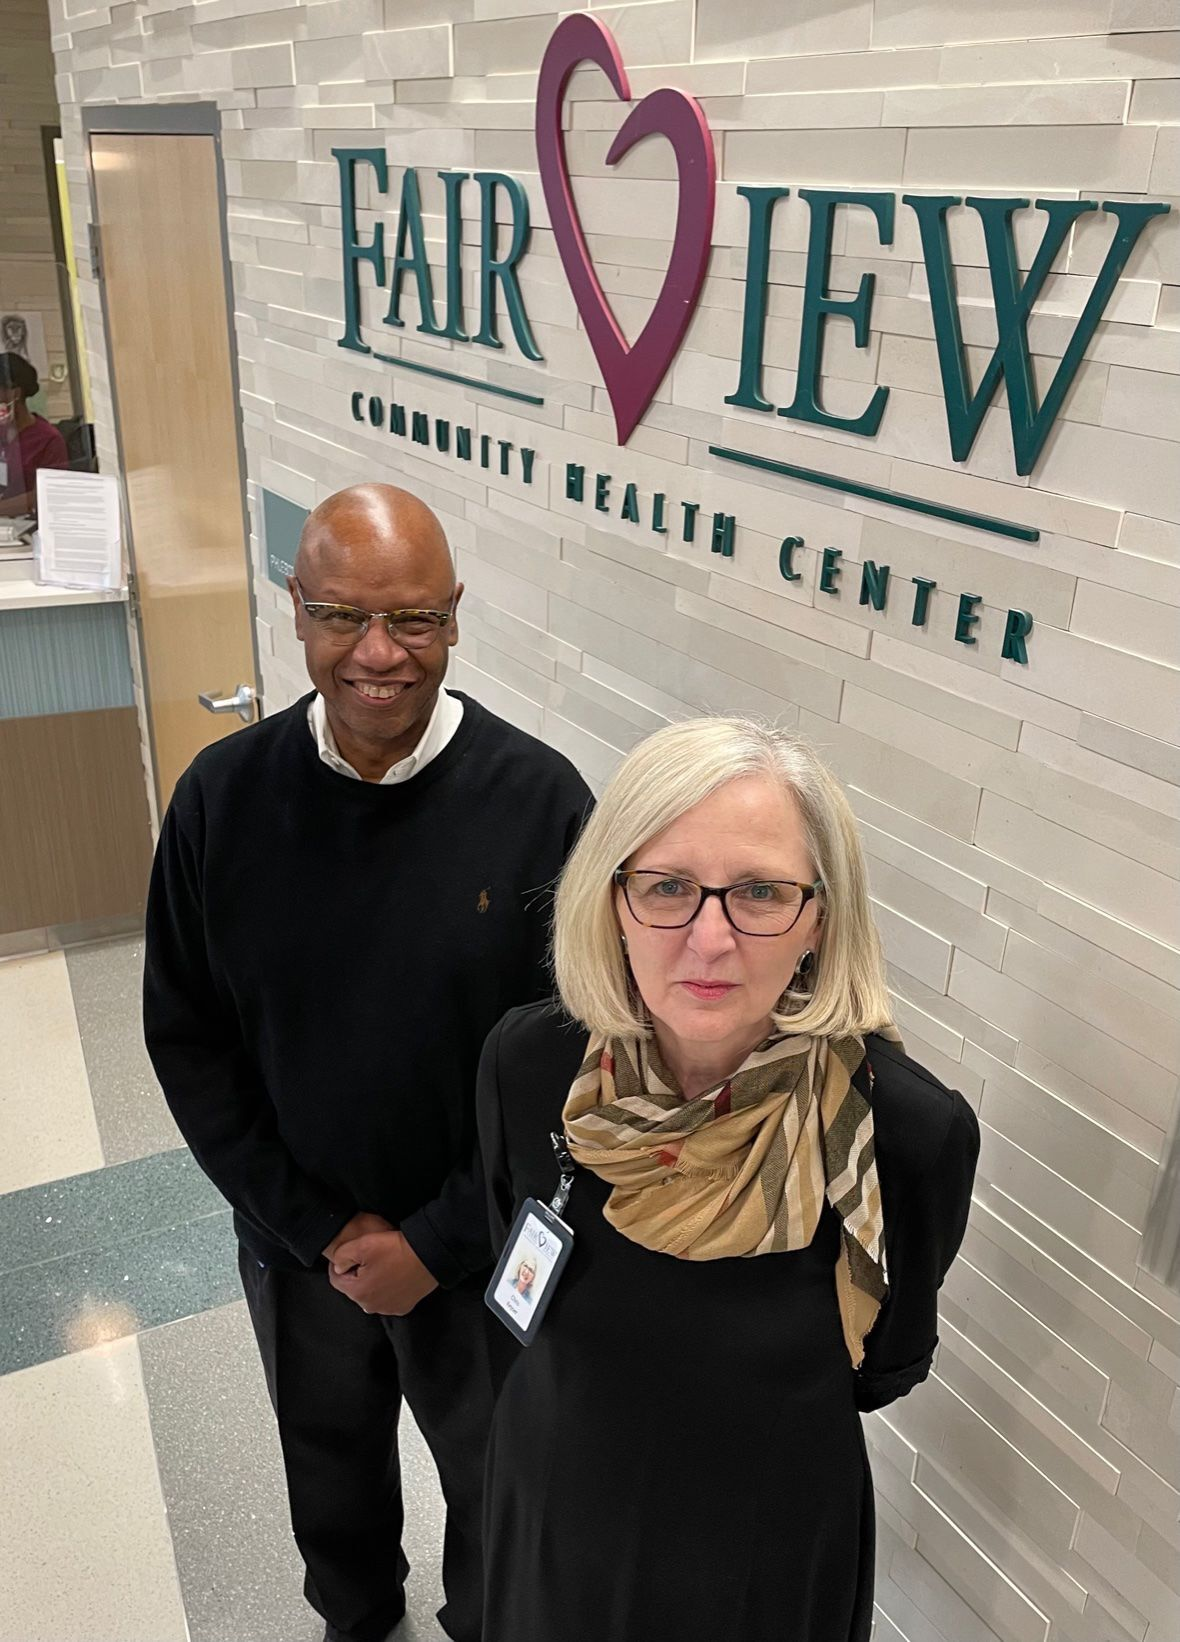 Keyser retiring after 20 years leading Fairview Community Health